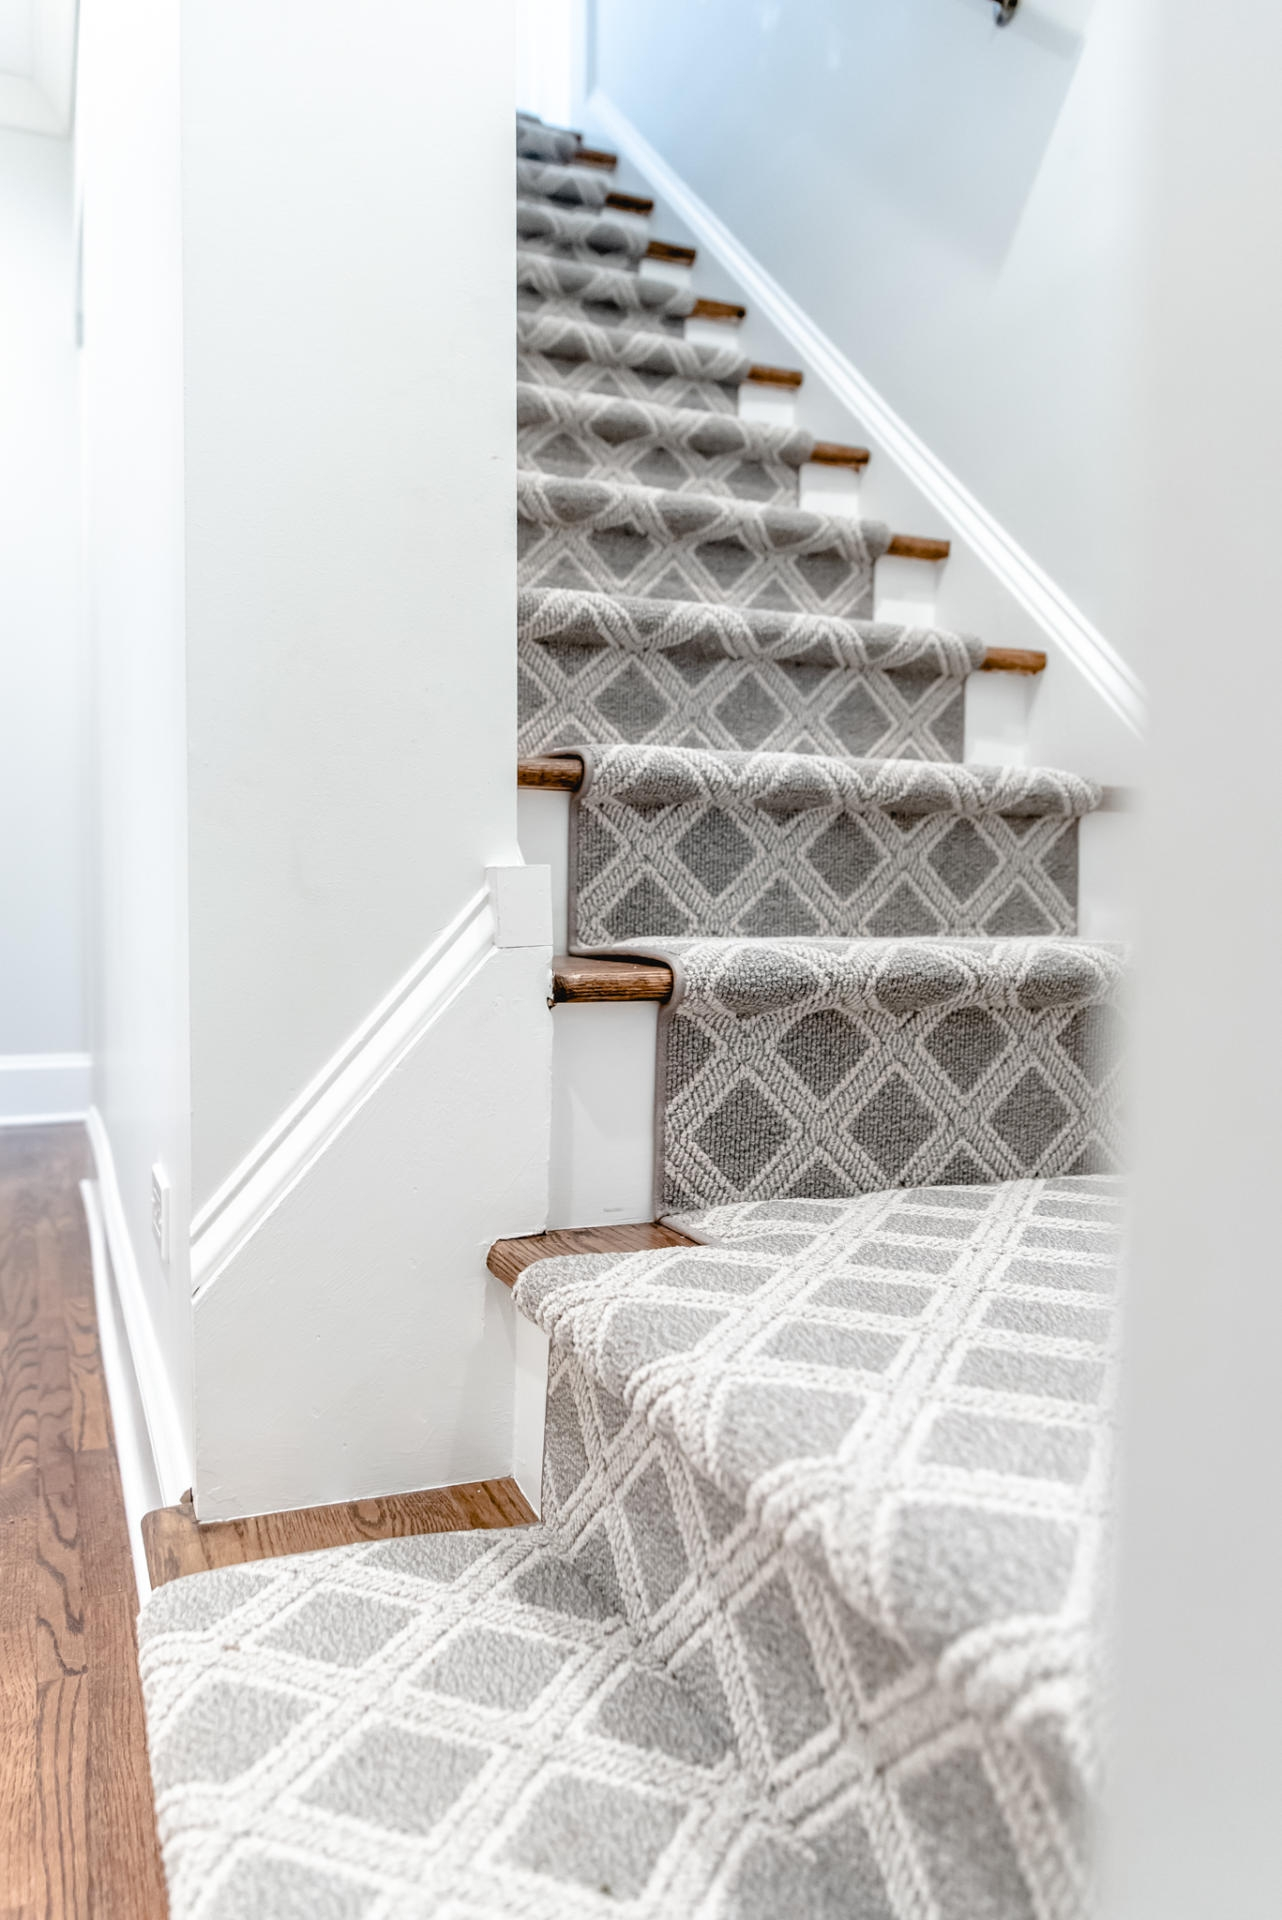 Stair Carpet Gain Inspiration And View Stair Carpet Projects | Spiral Staircase Carpet Runners | Staircase Ideas | Staircase Railings | Stair Case | Beige Carpet | Sisal Stair